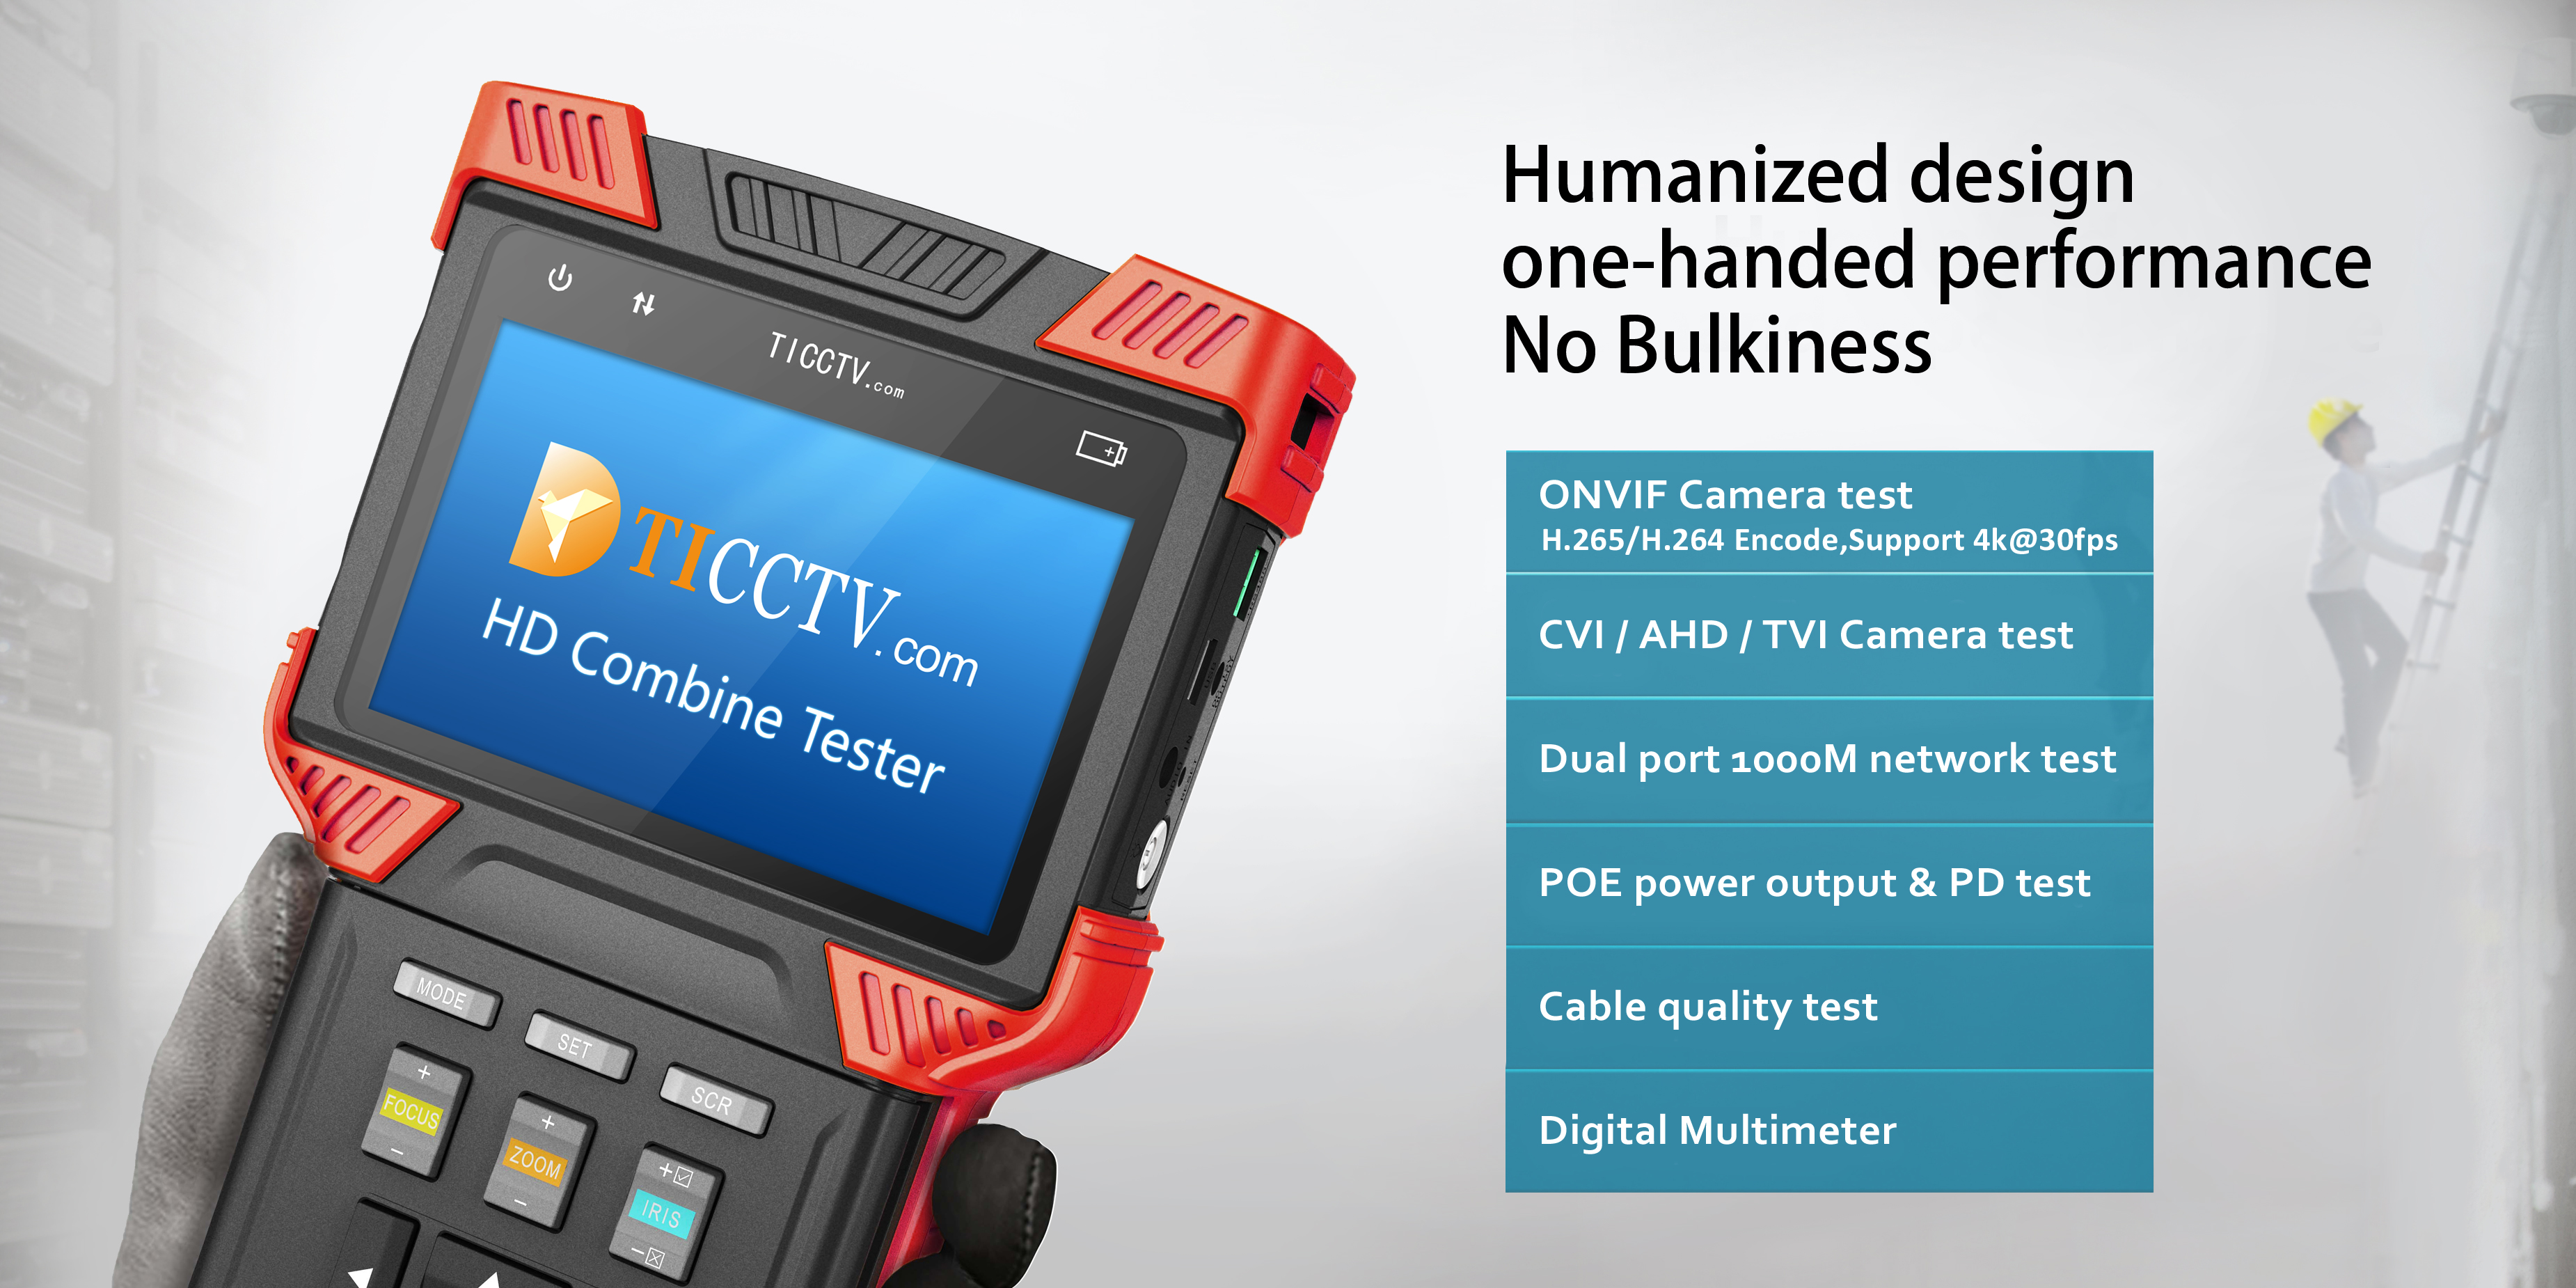 humanized design one-hand performance no bulkiness